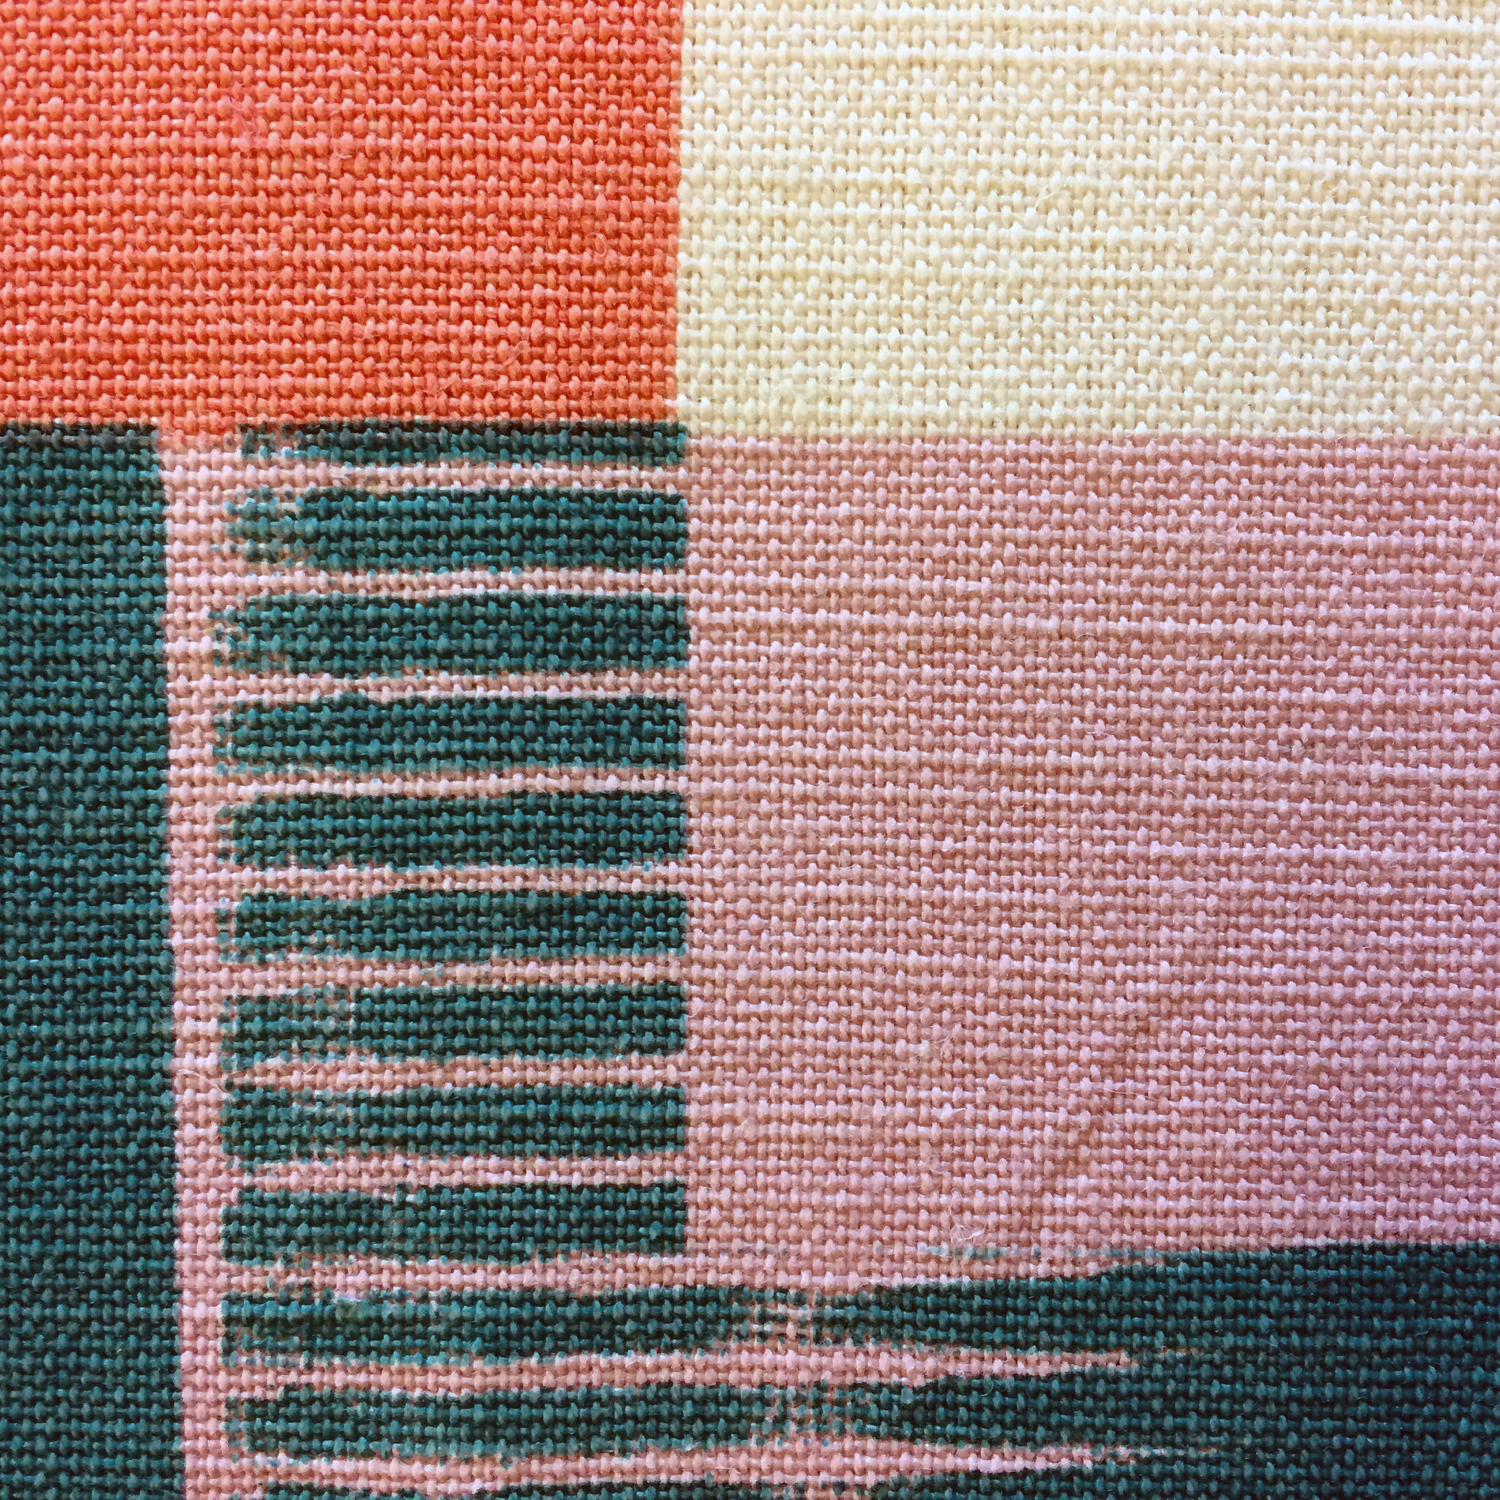 Michelle_House_printed_textile_artwork_in progress_detail_ Londo